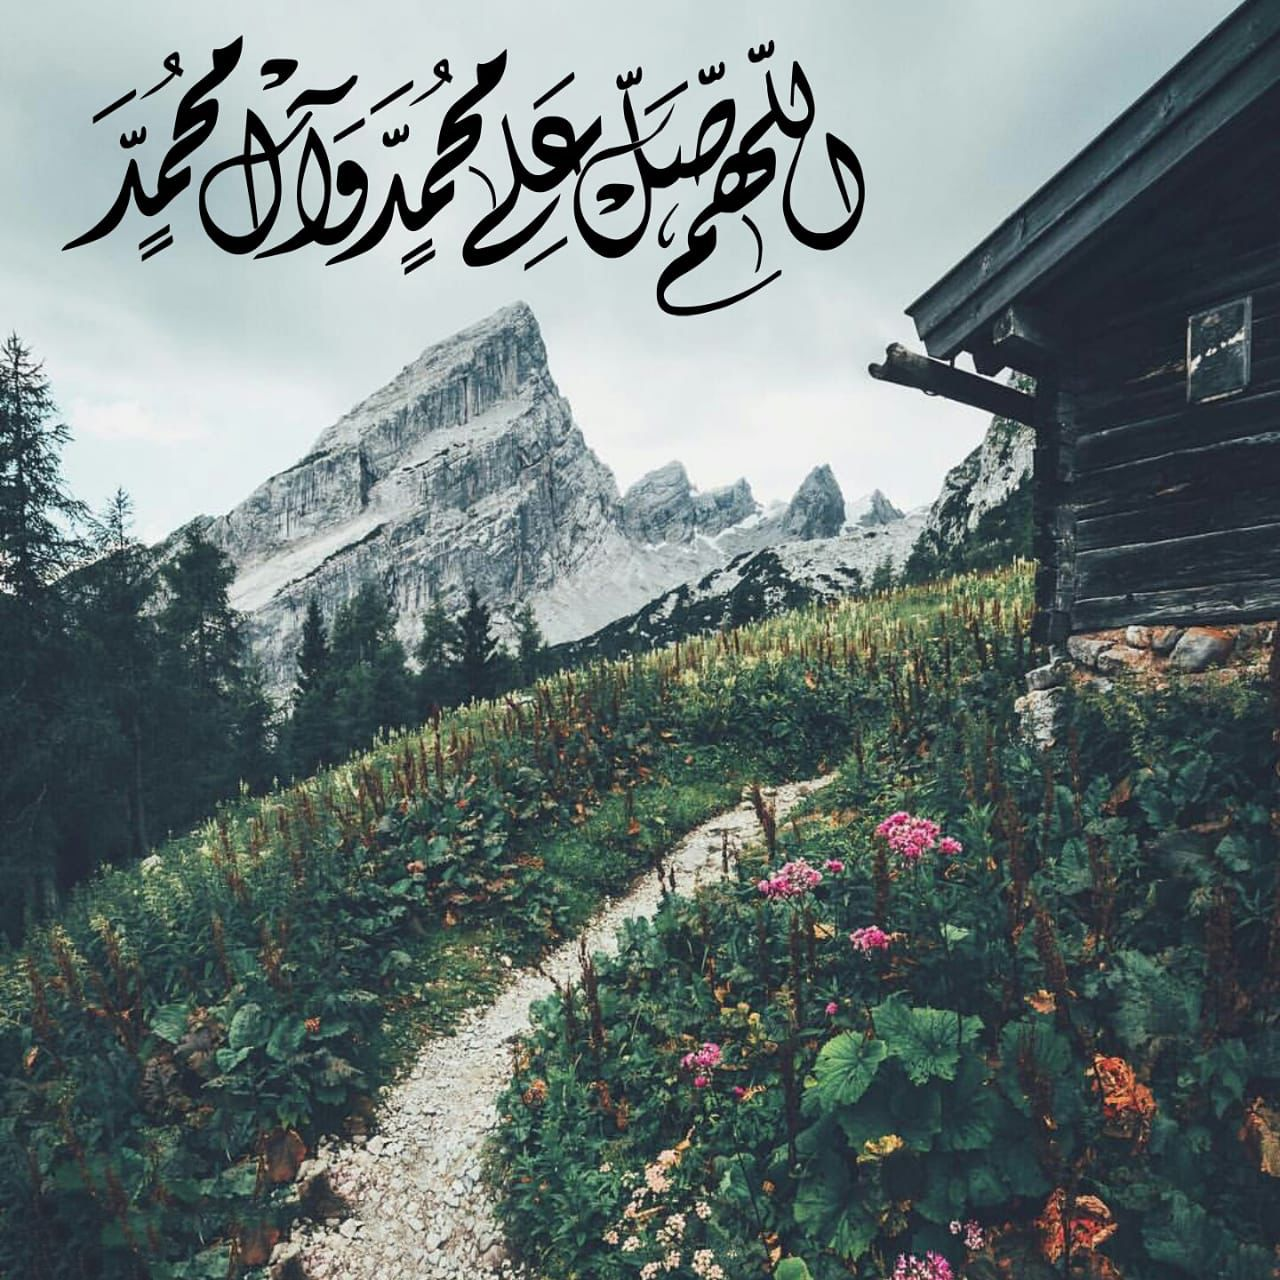 اللهم صل على محمد وآل محمد Islamic Pictures Islamic Images Instagram Aesthetic